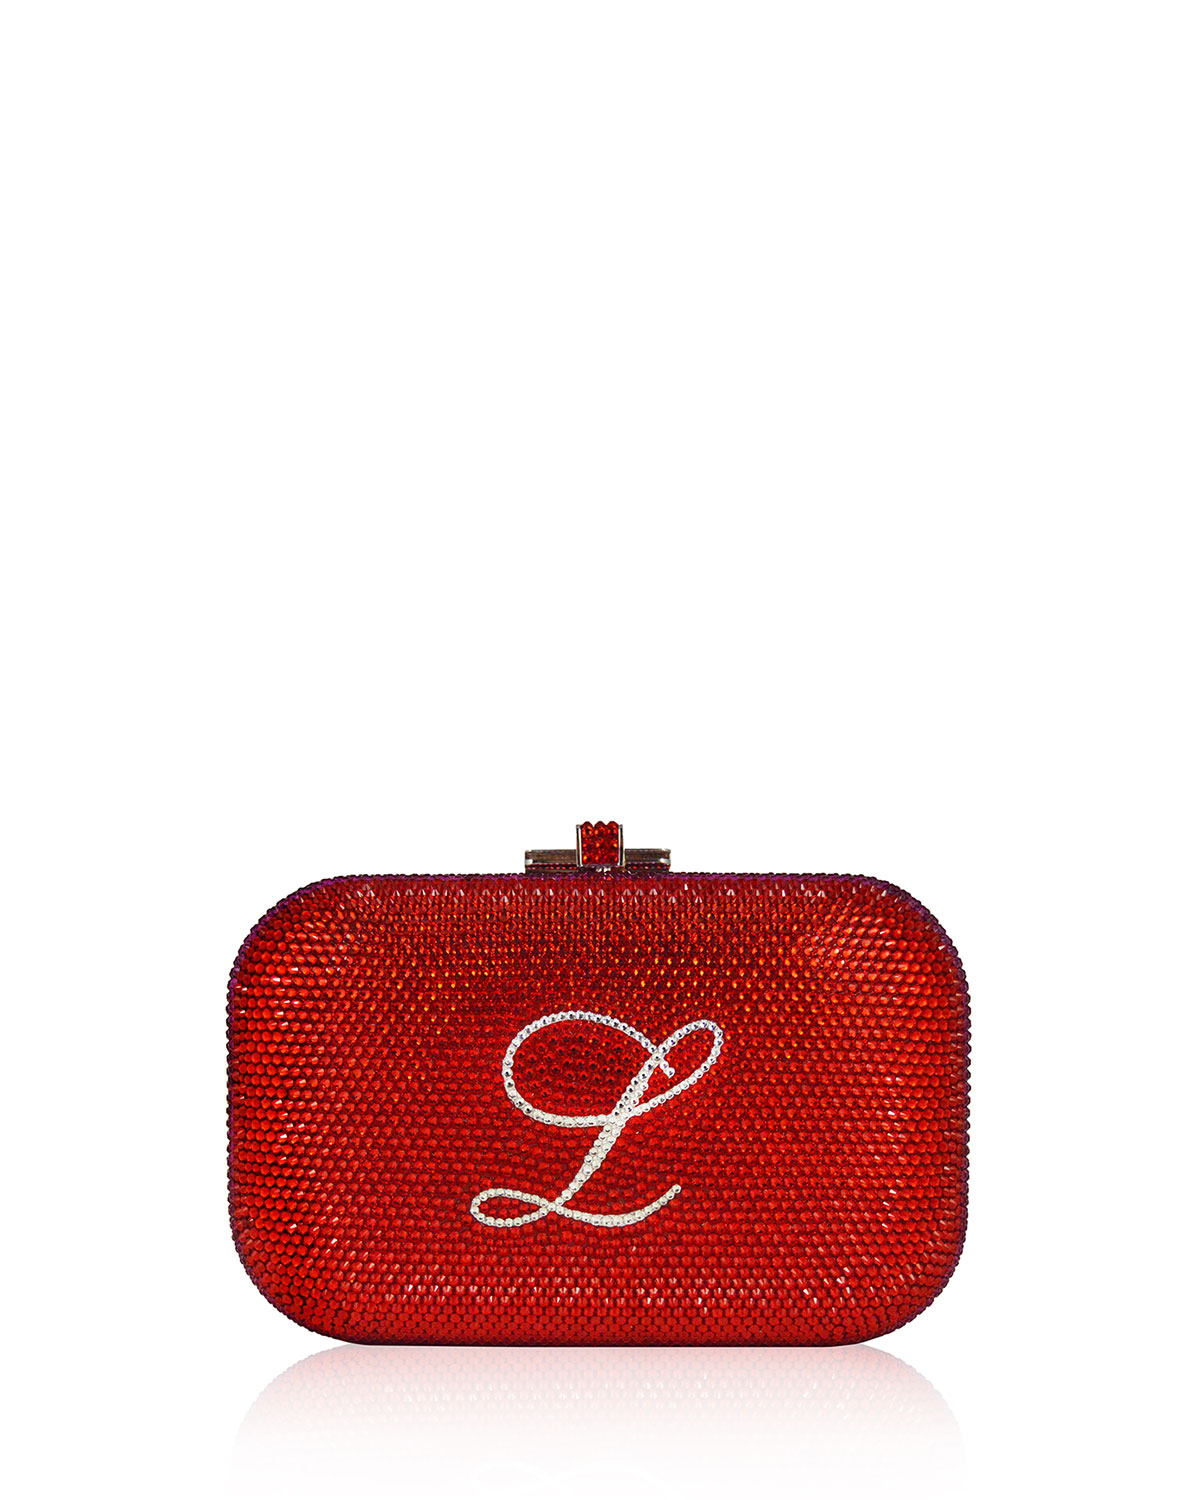 Judith Leiber Couture Monogram Crystal Slide-Lock Clutch Bag 89b06b7be9d6a